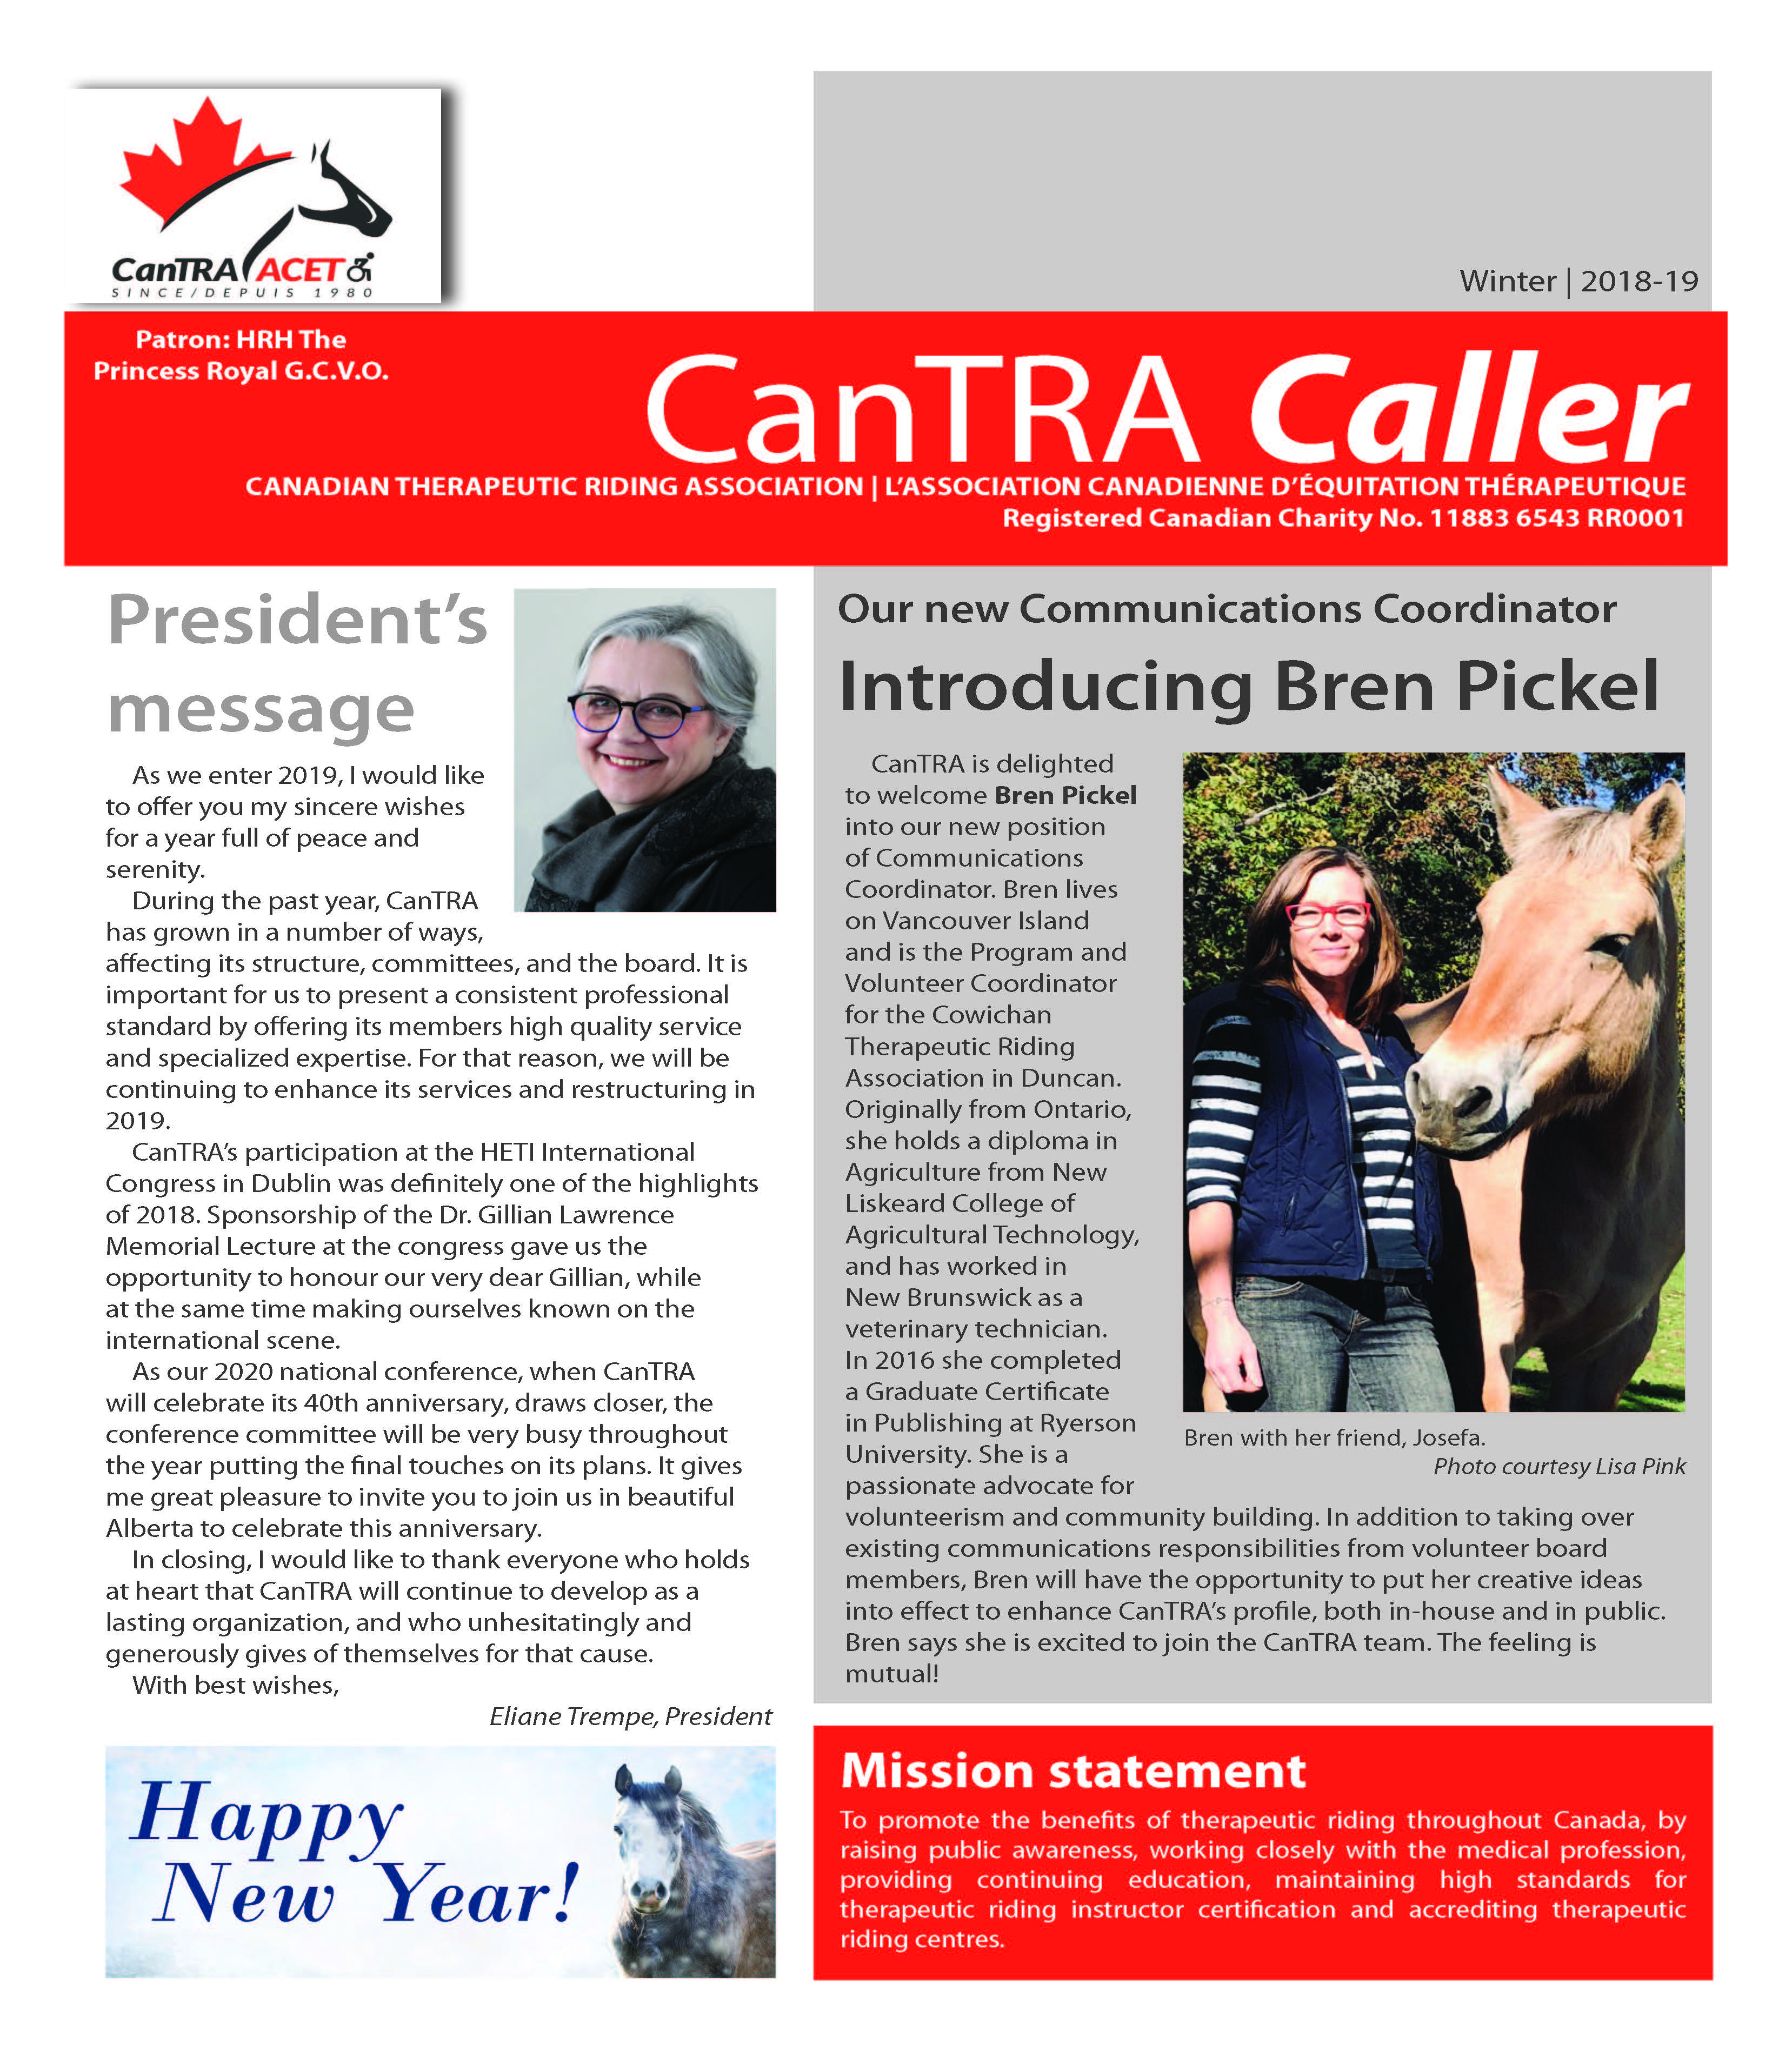 CanTRA Caller Winter 2019